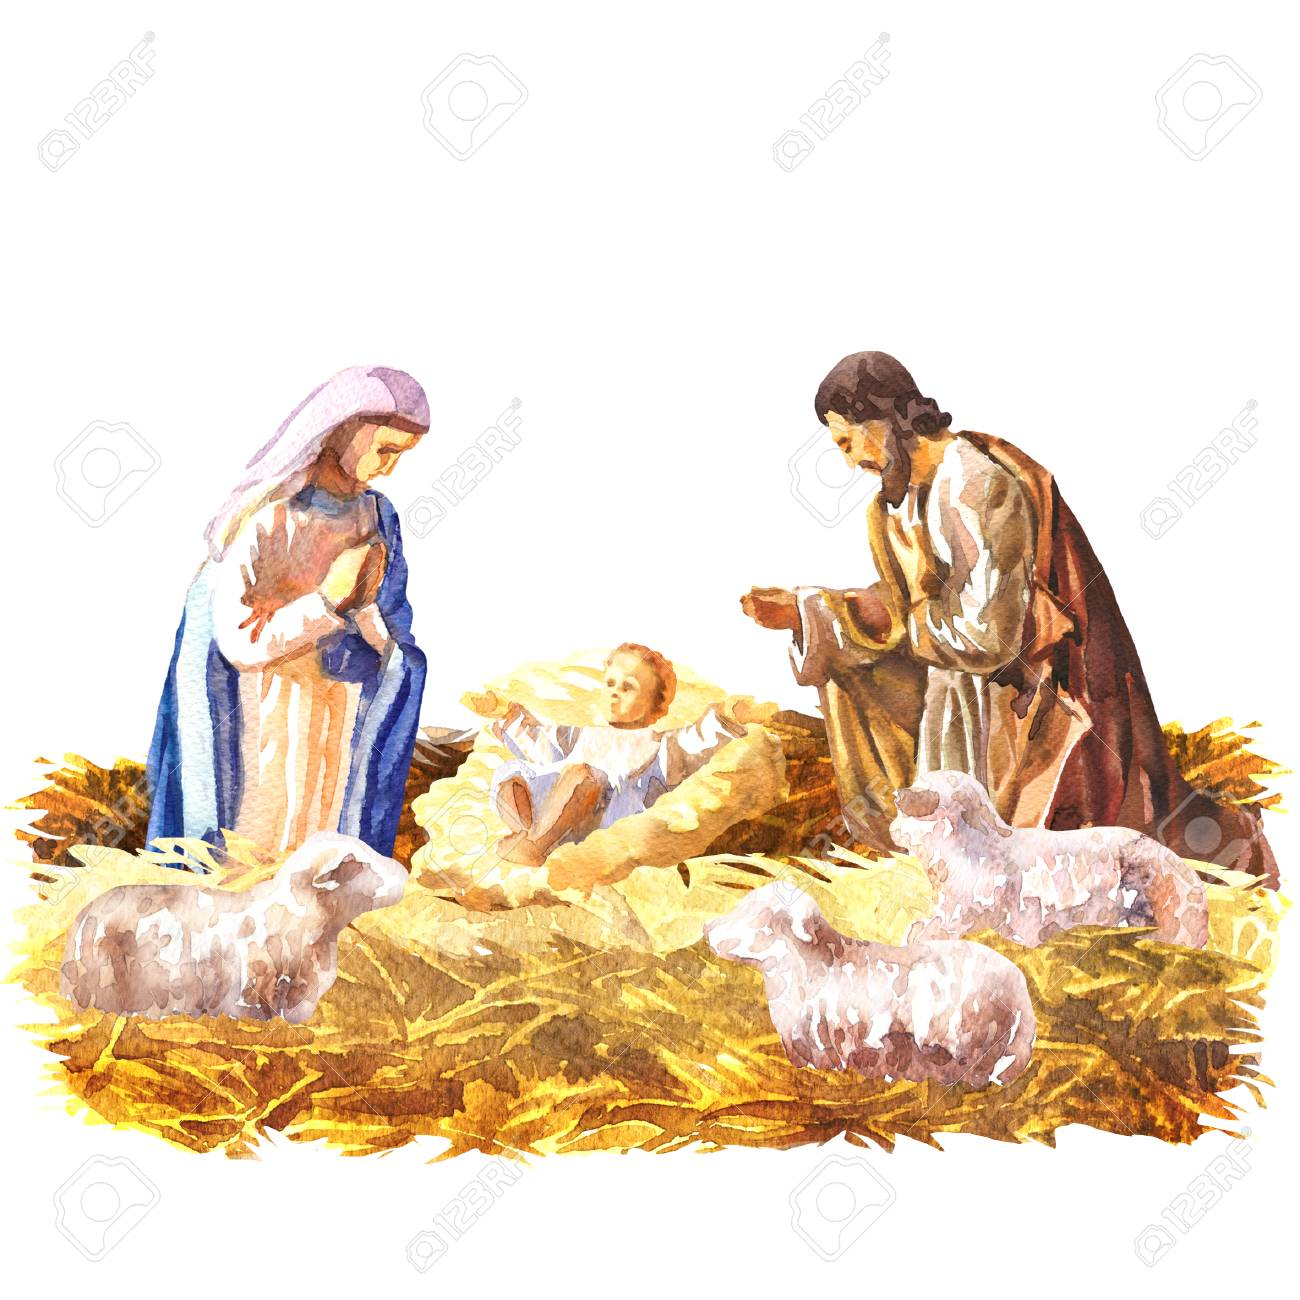 Christmas Nativity.Stock Illustration